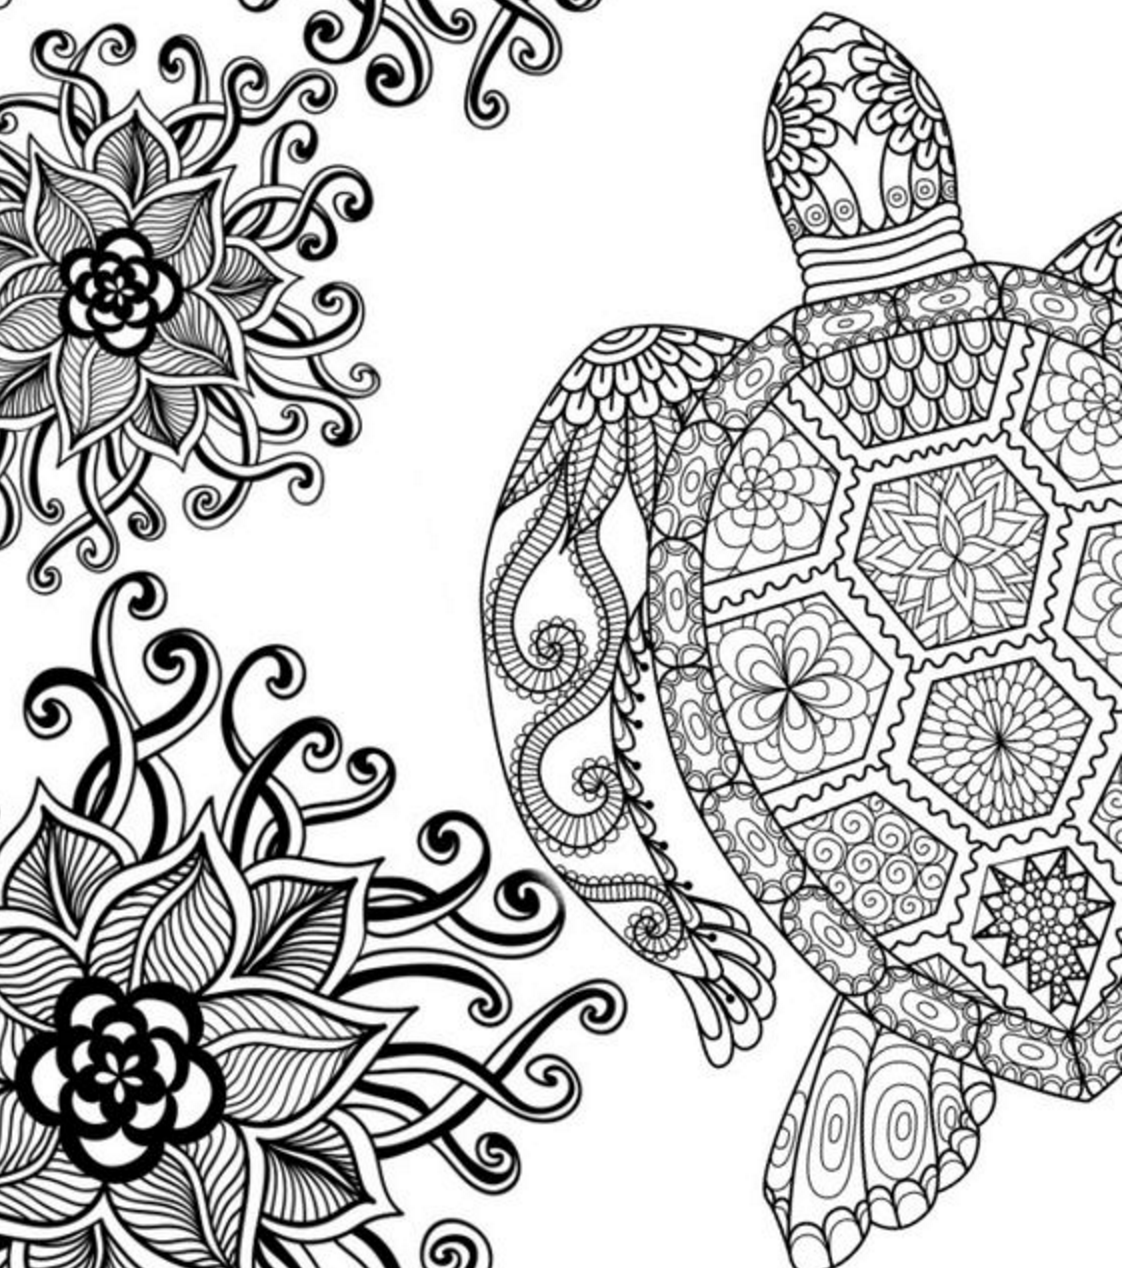 Cool And Opulent Free Printable Adult Coloring Sheets 18 Awesome